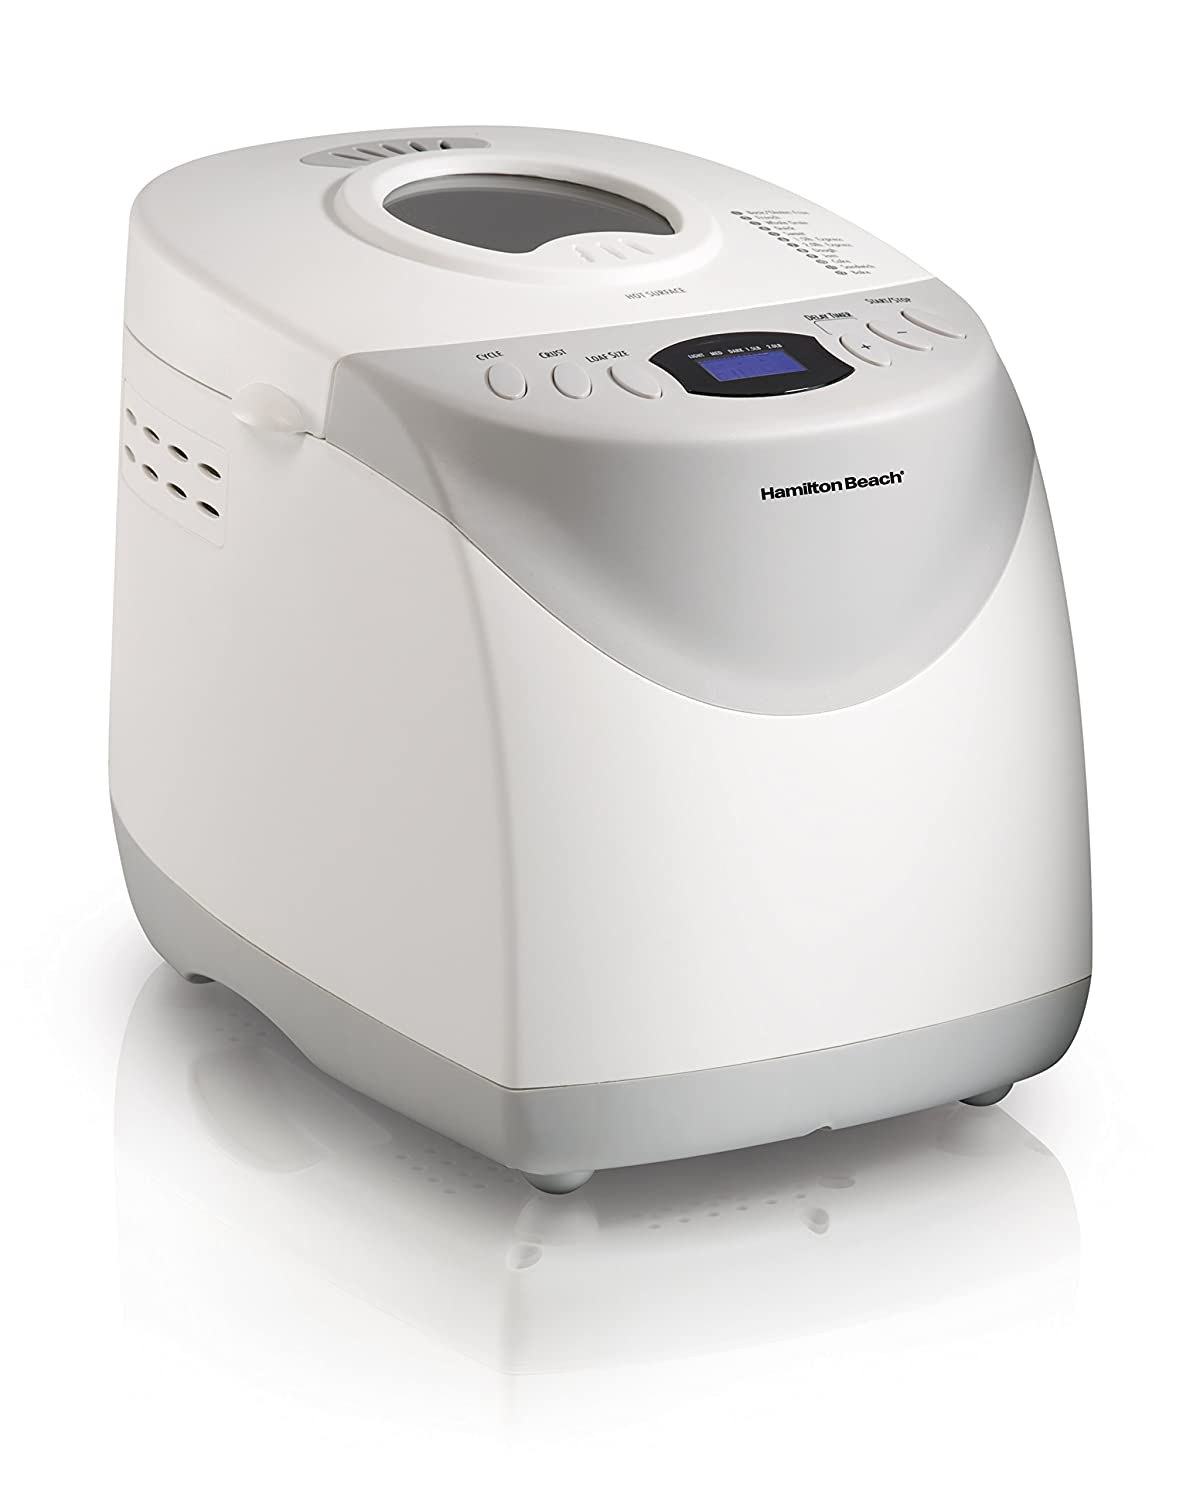 Hamilton Beach Bread Maker 29881: The Cost-Effective Investment